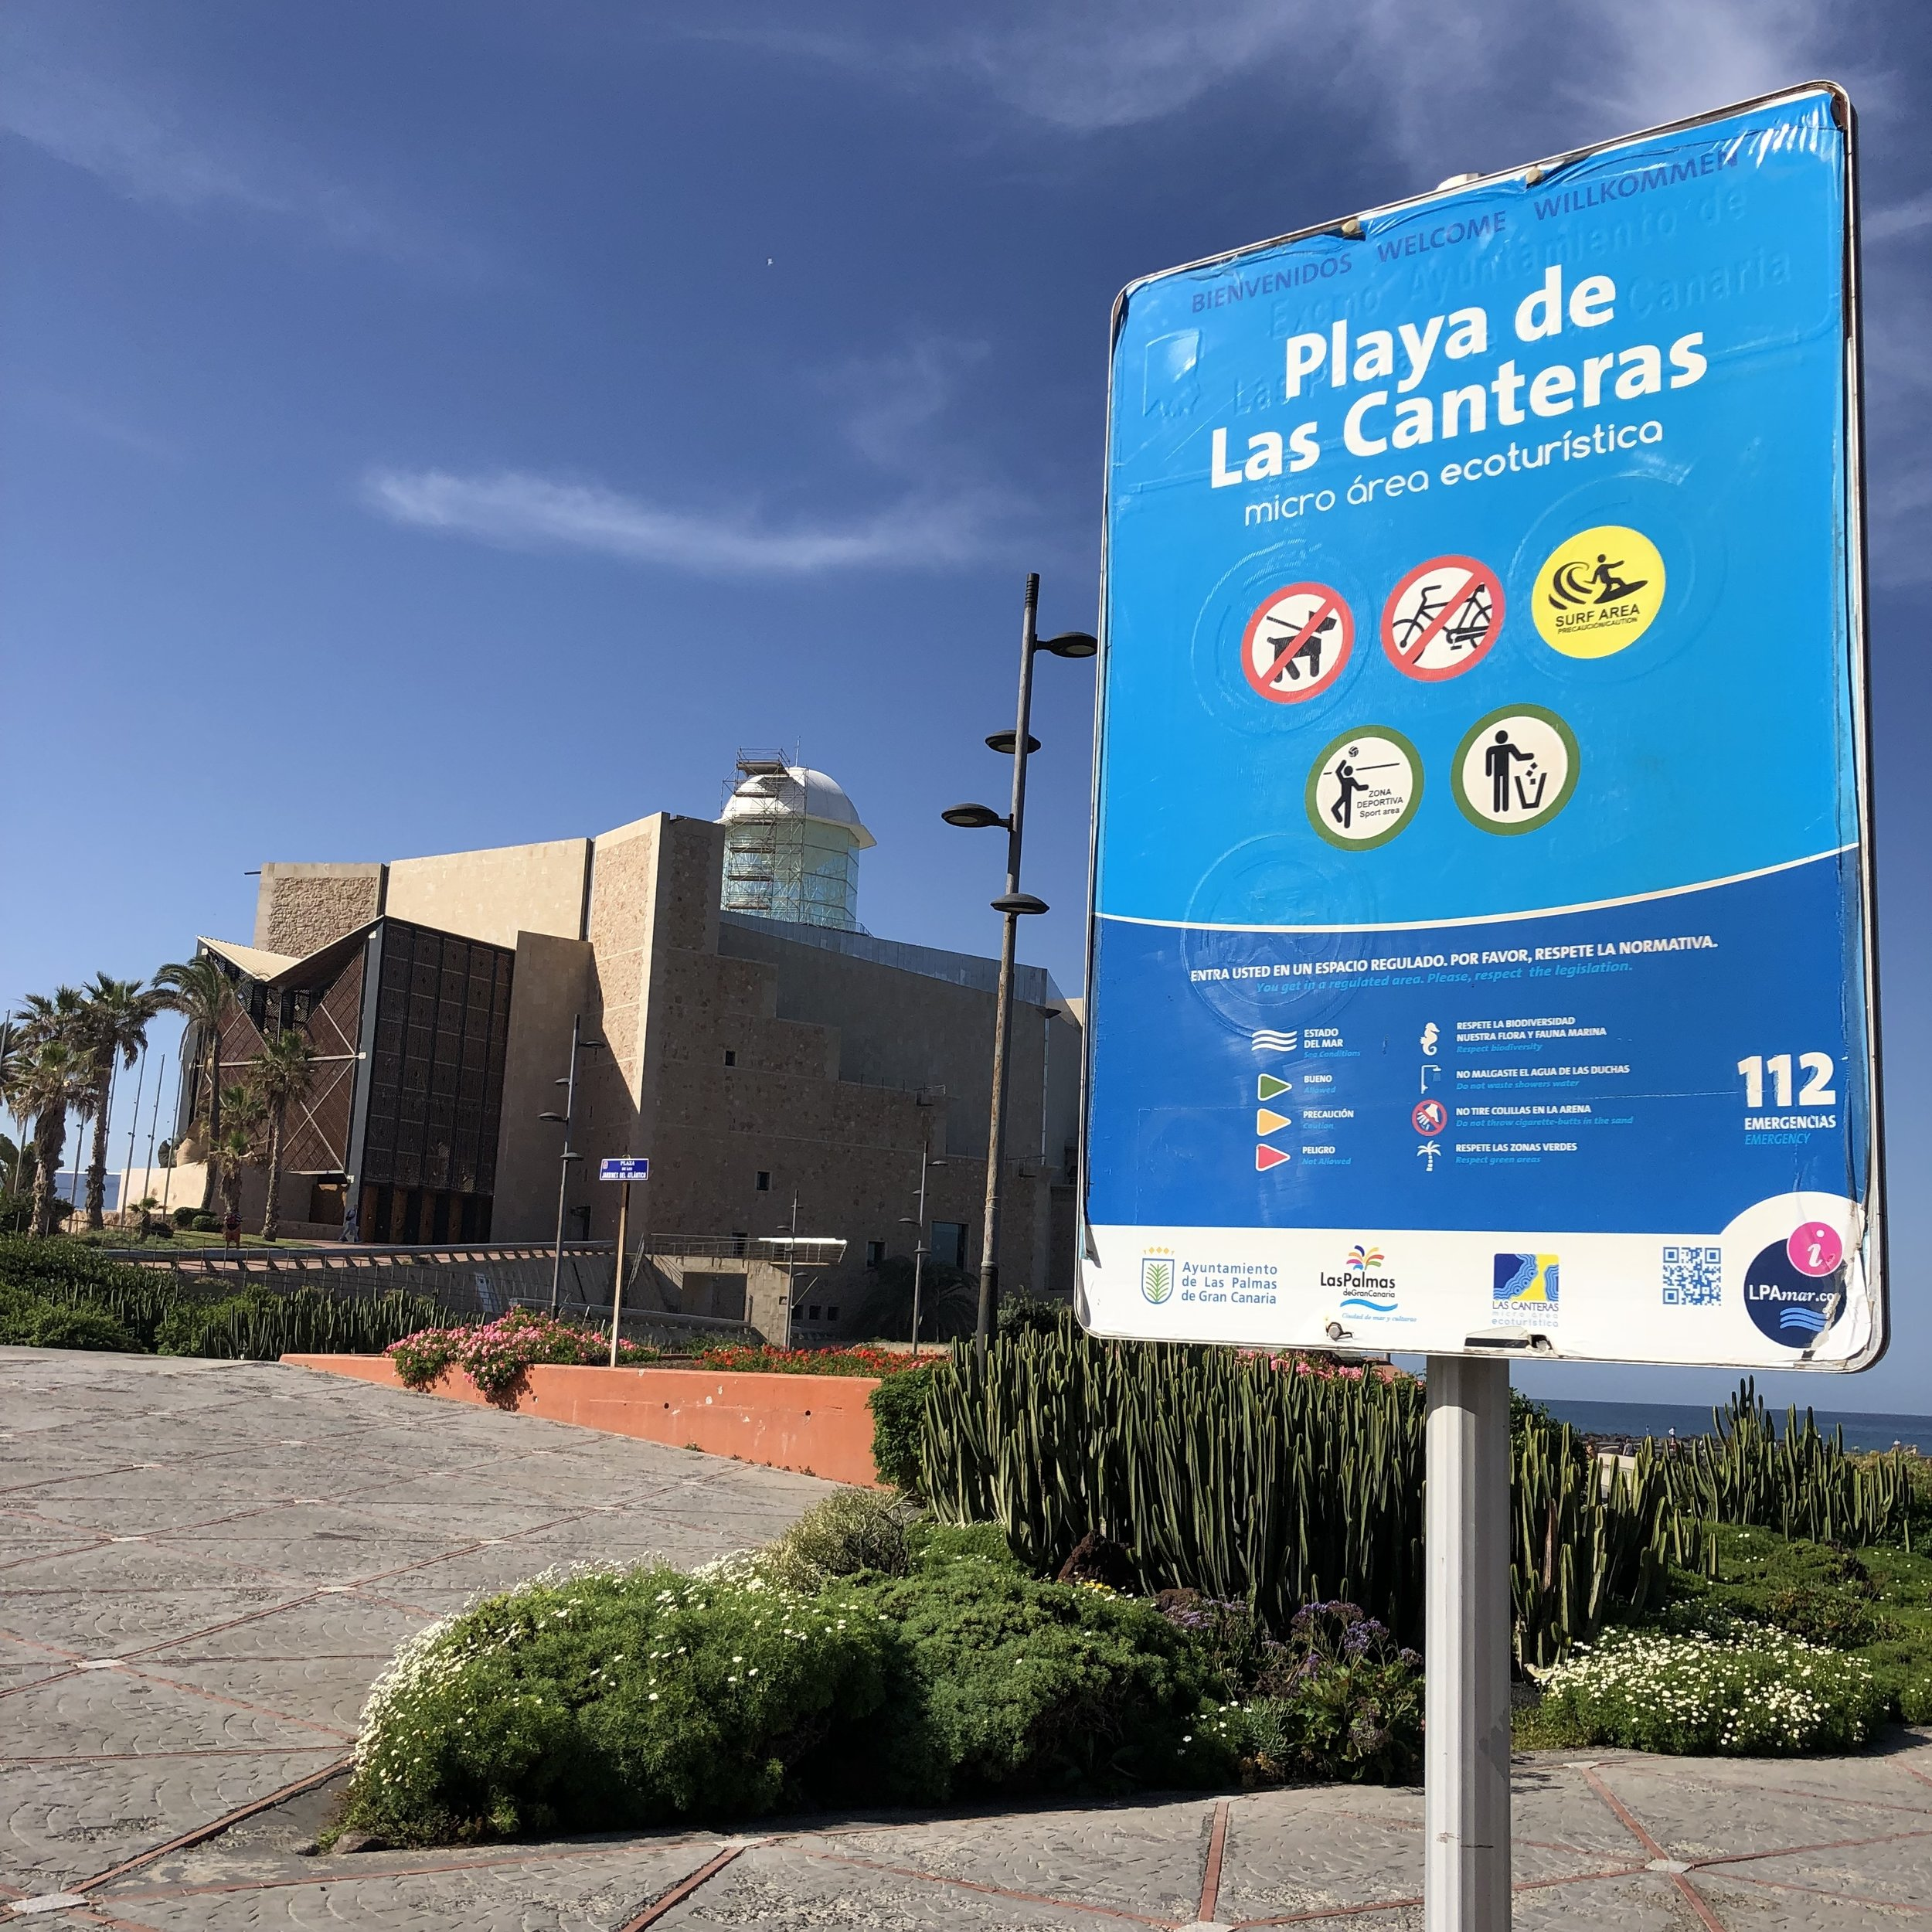 It is prohibited for dogs to walk in the tourist zones in Las Palmas de Gran Canaria.